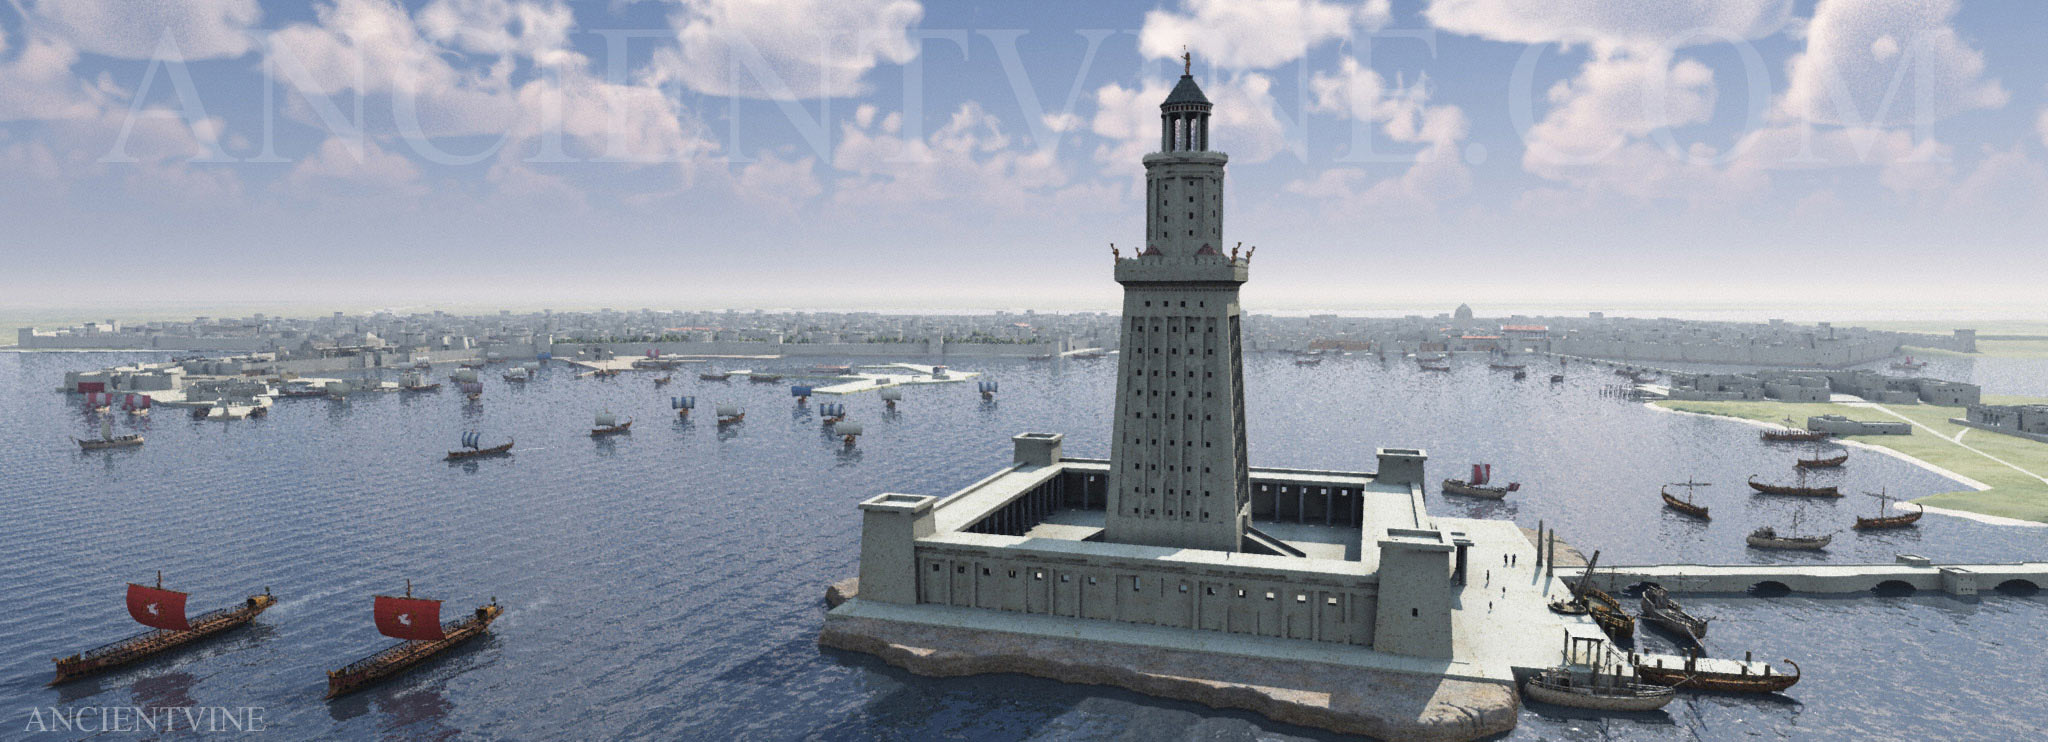 Research Of The Ancient Seven Wonders Lighthouse Alexandria